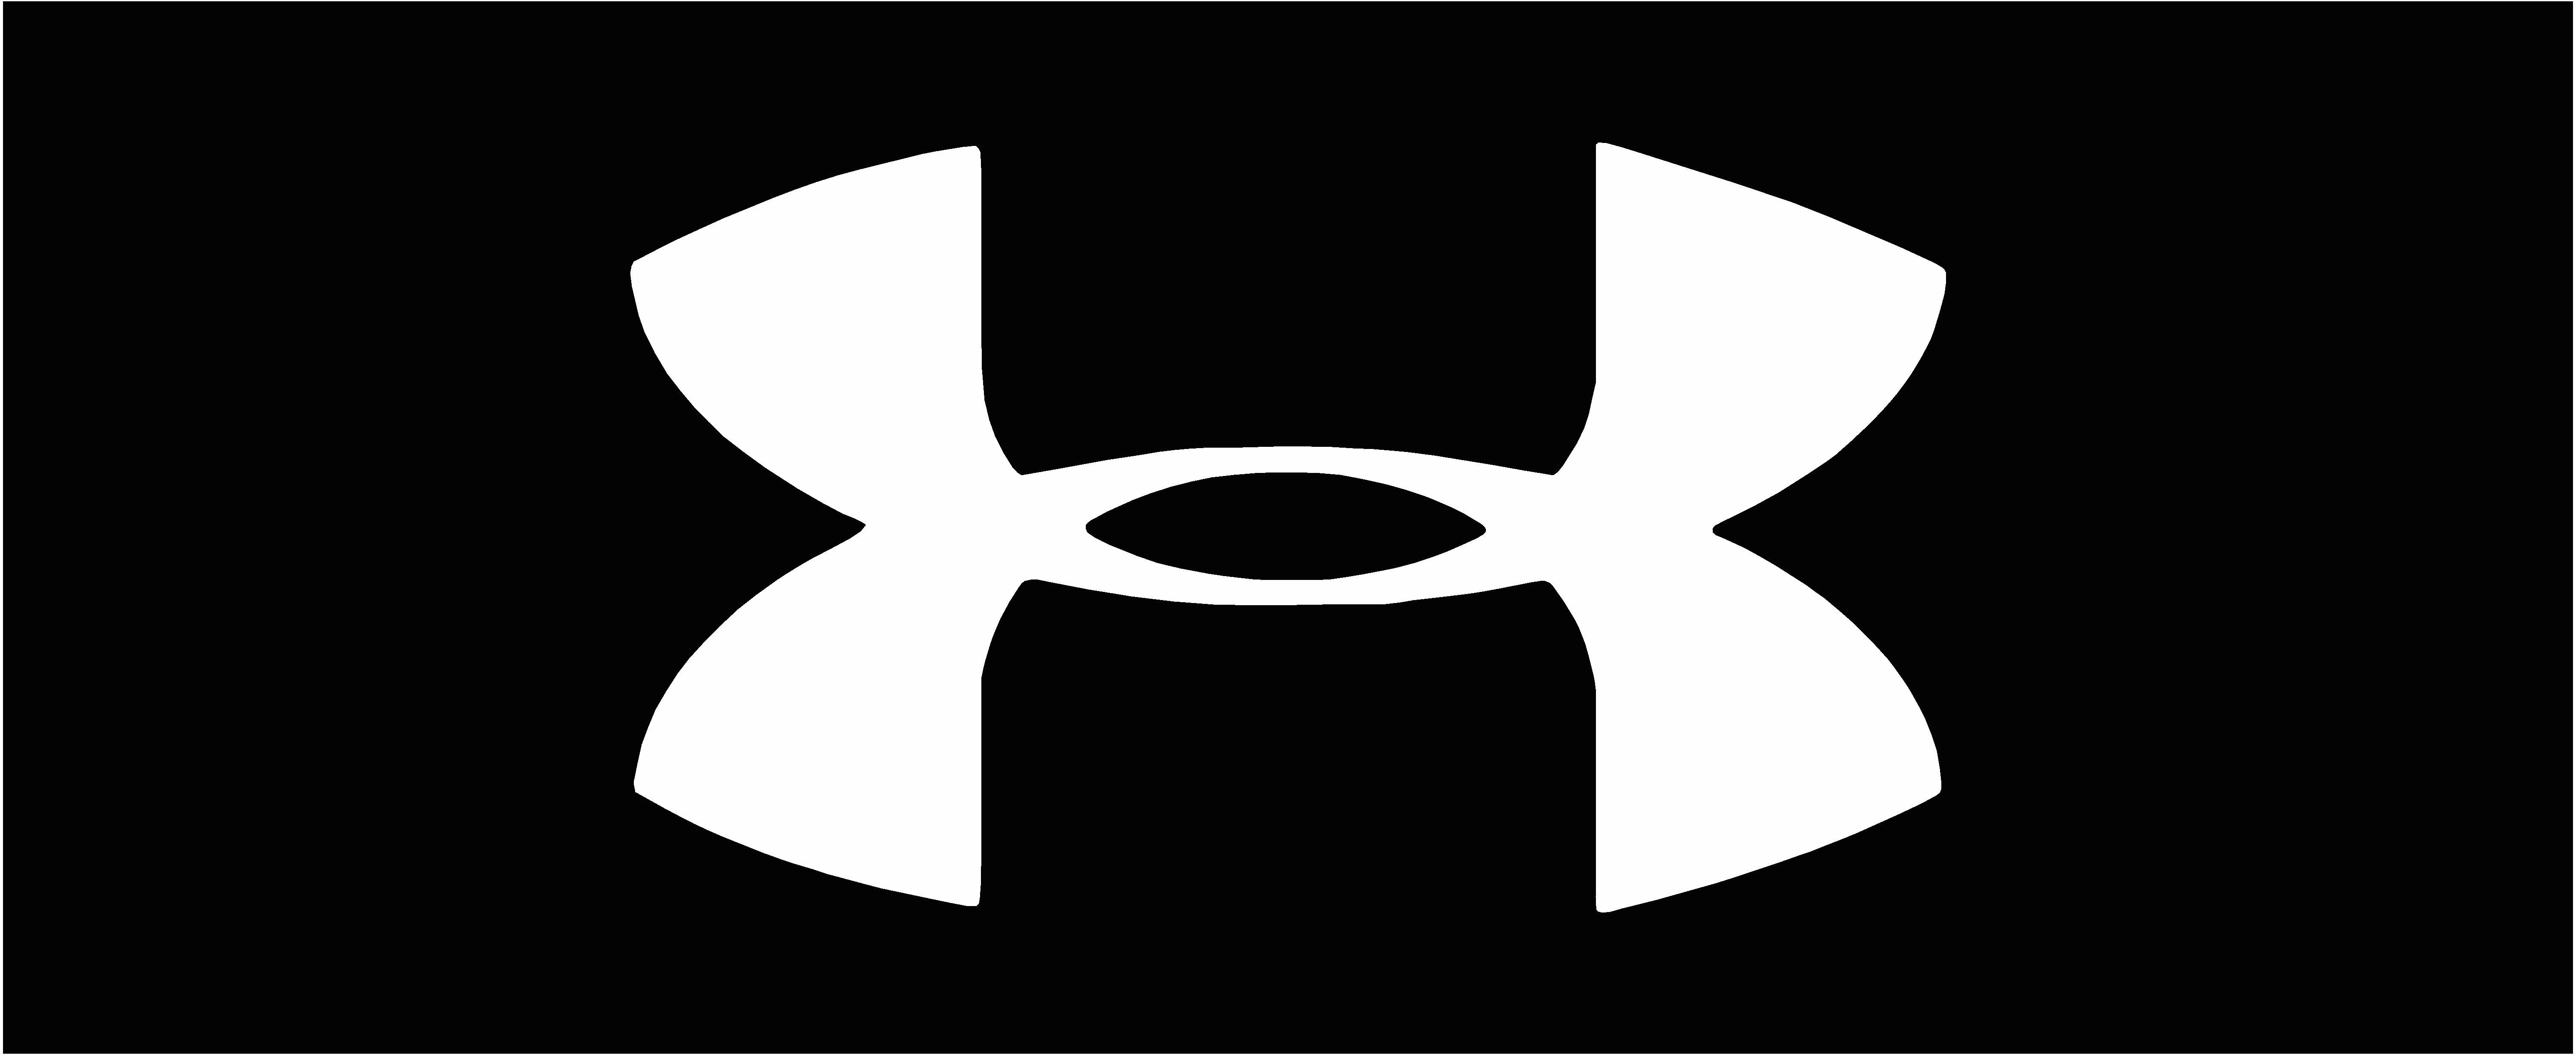 Under Armour Images TheCelebrityPix 6019x2465